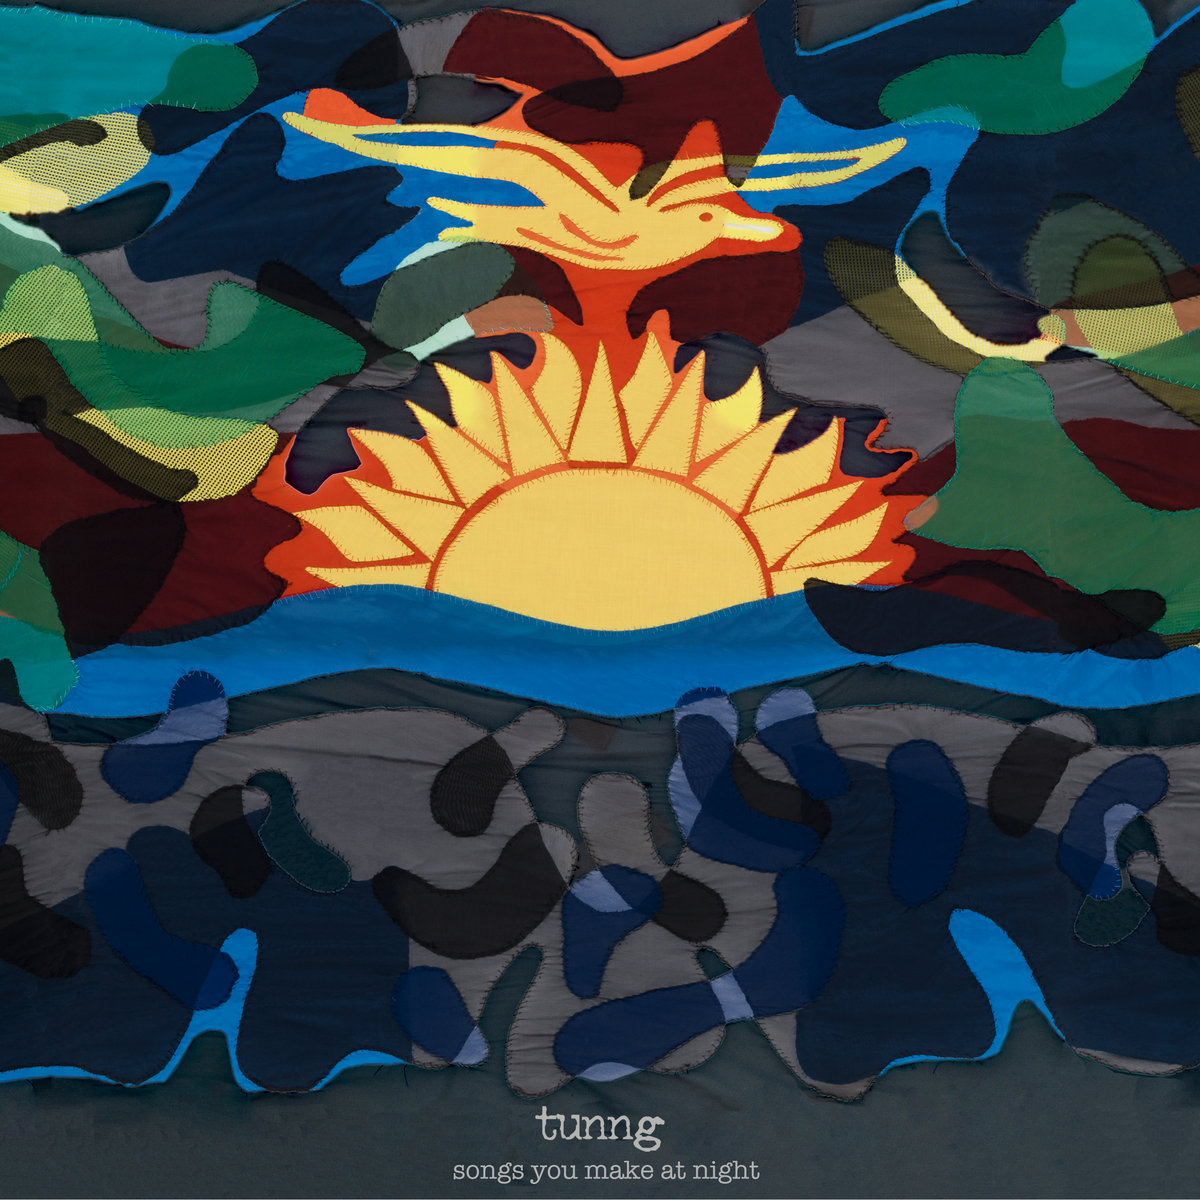 Tunng: 'Songs You Make At Night'